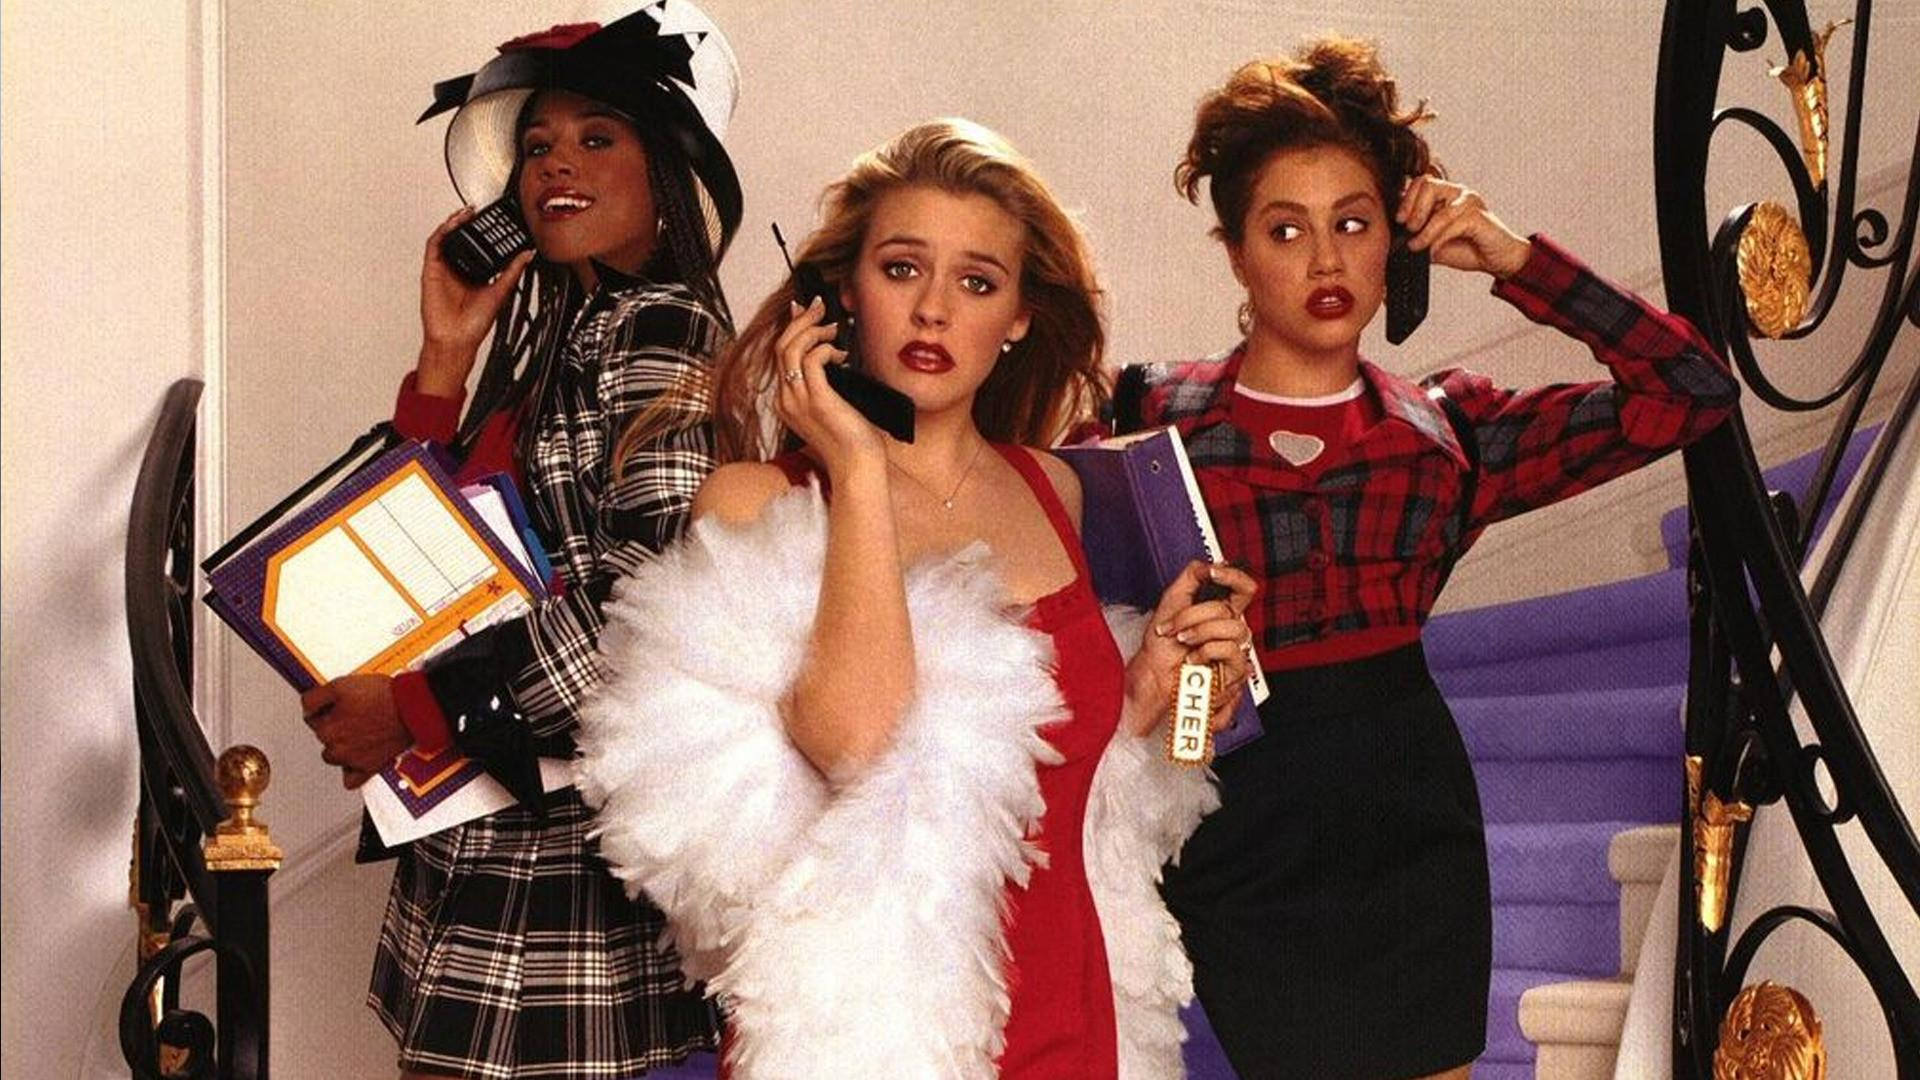 Clueless movie stills